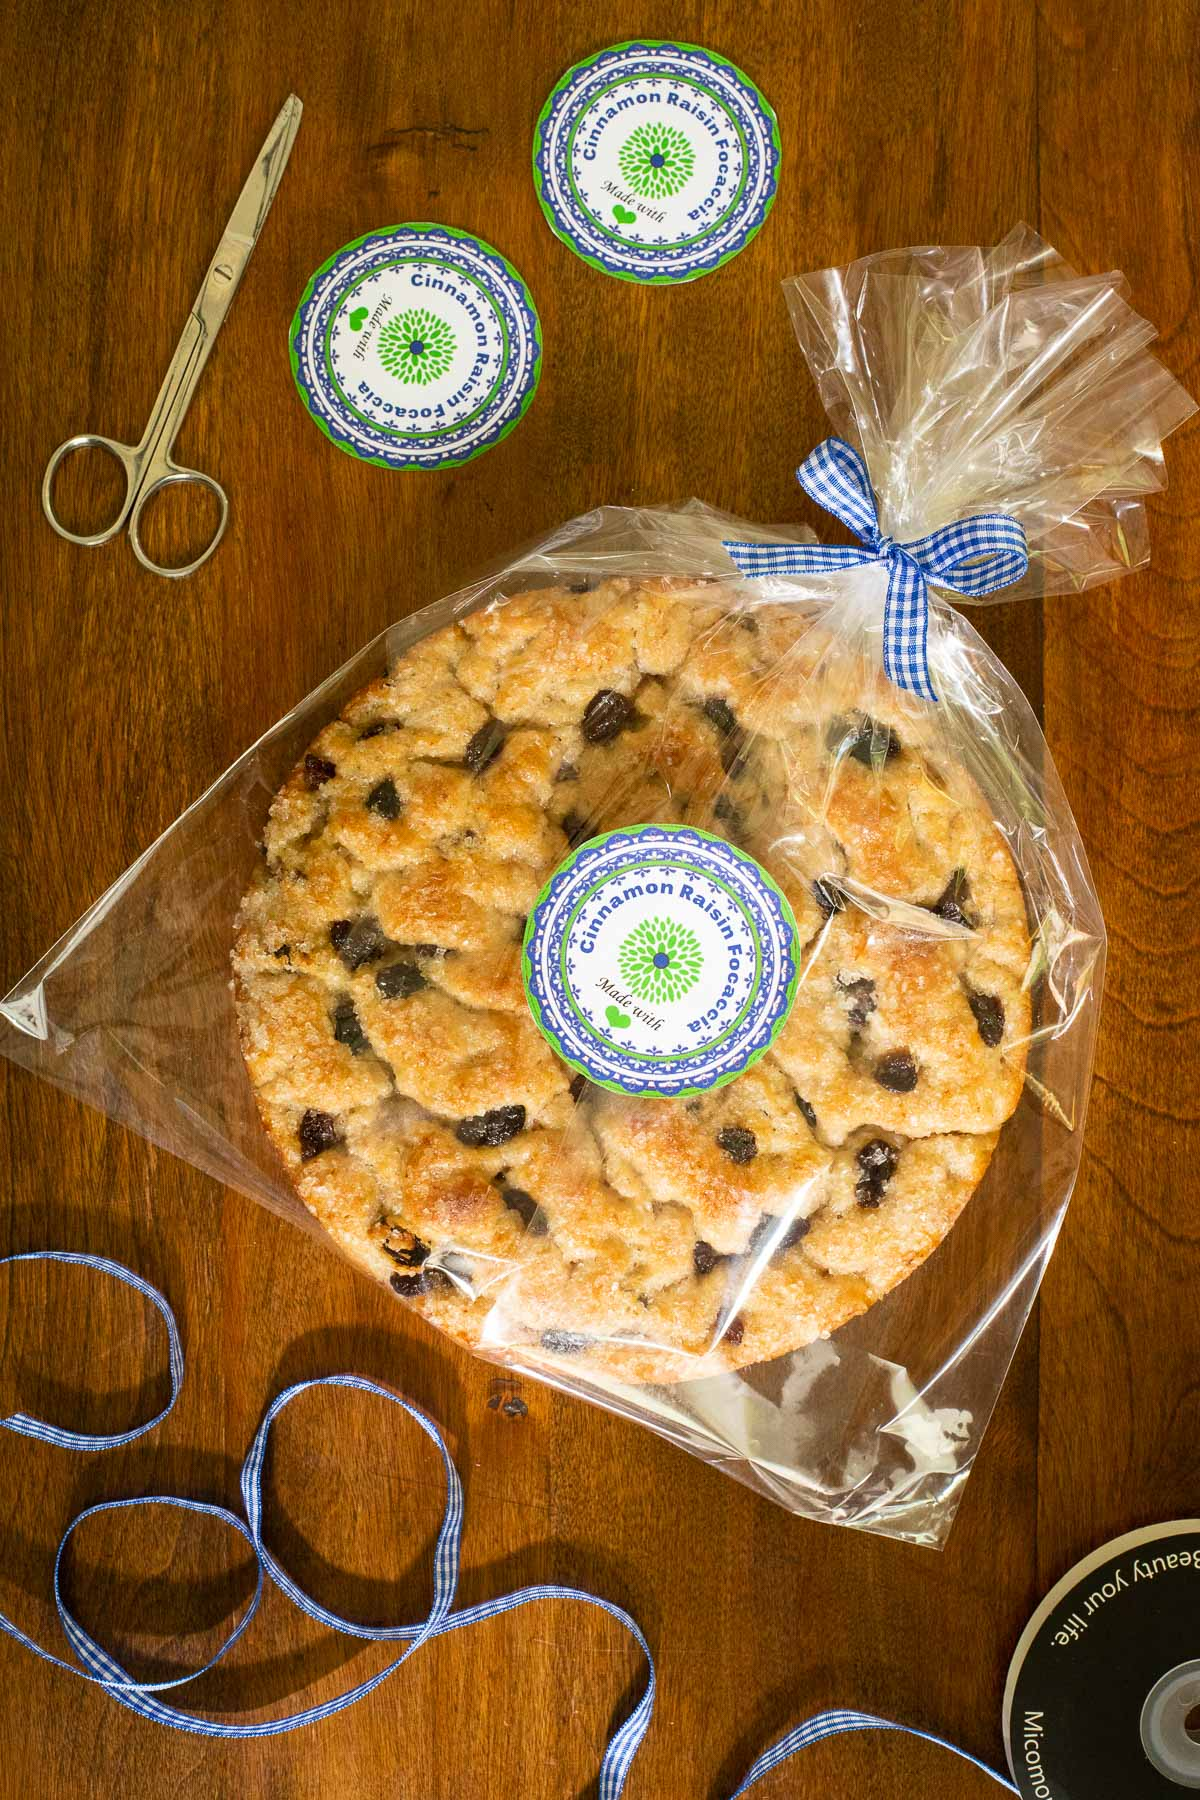 Vertical overhead photo of a loaf of Ridiculously Easy Cinnamon Raisin Focaccia bread in a clear plastic wrap with a custom gift label attached.